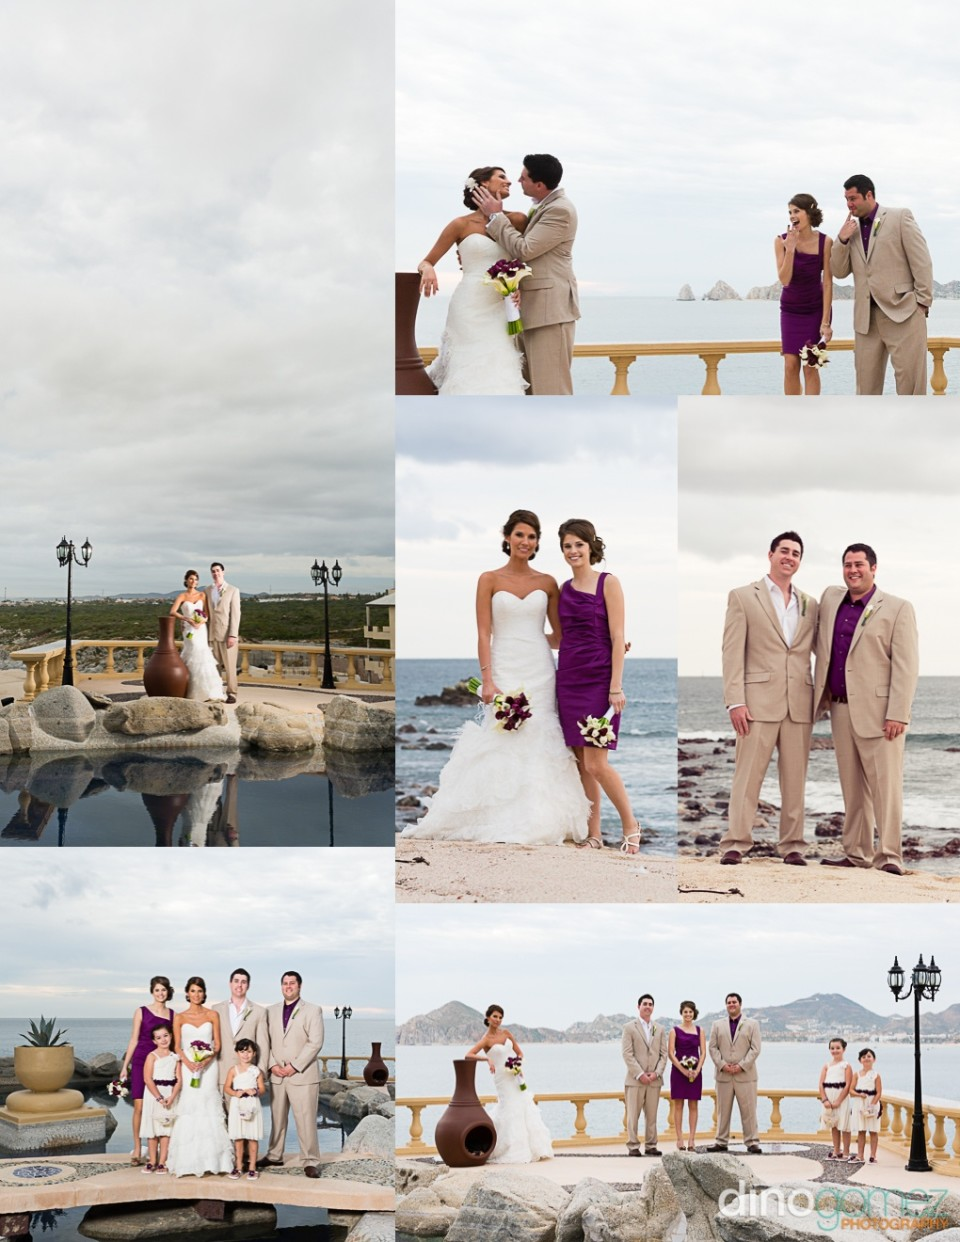 Beautiful pictures of the bride, groom and other members of the wedding party at the beach. Photograph taken by Dino Gomez